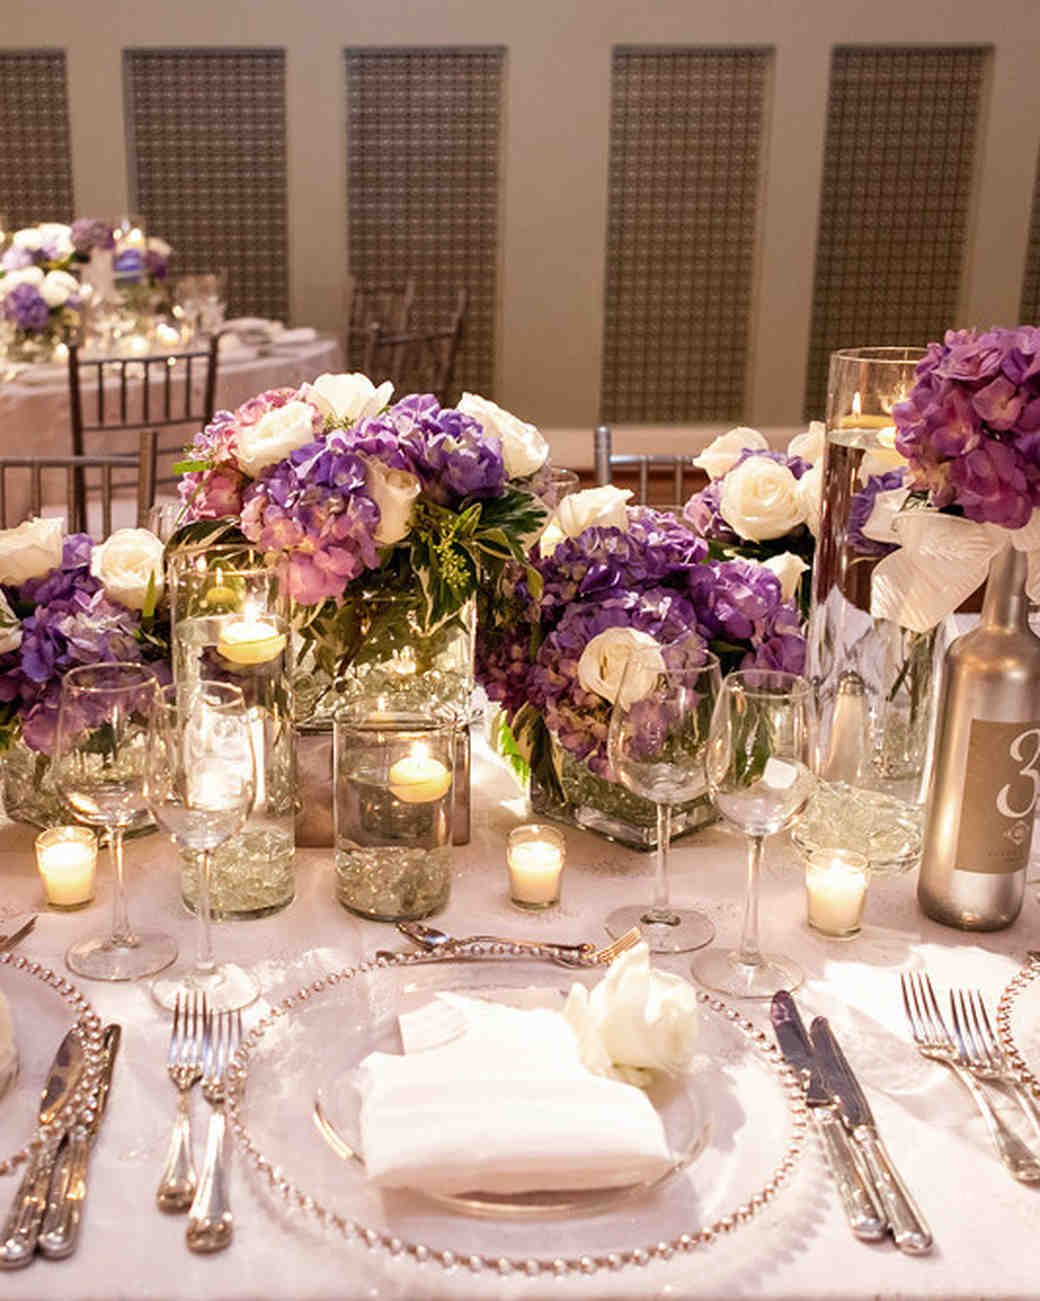 Jewel-Toned Wedding Centerpieces That Will Dazzle Your Guests | Martha  Stewart Weddings